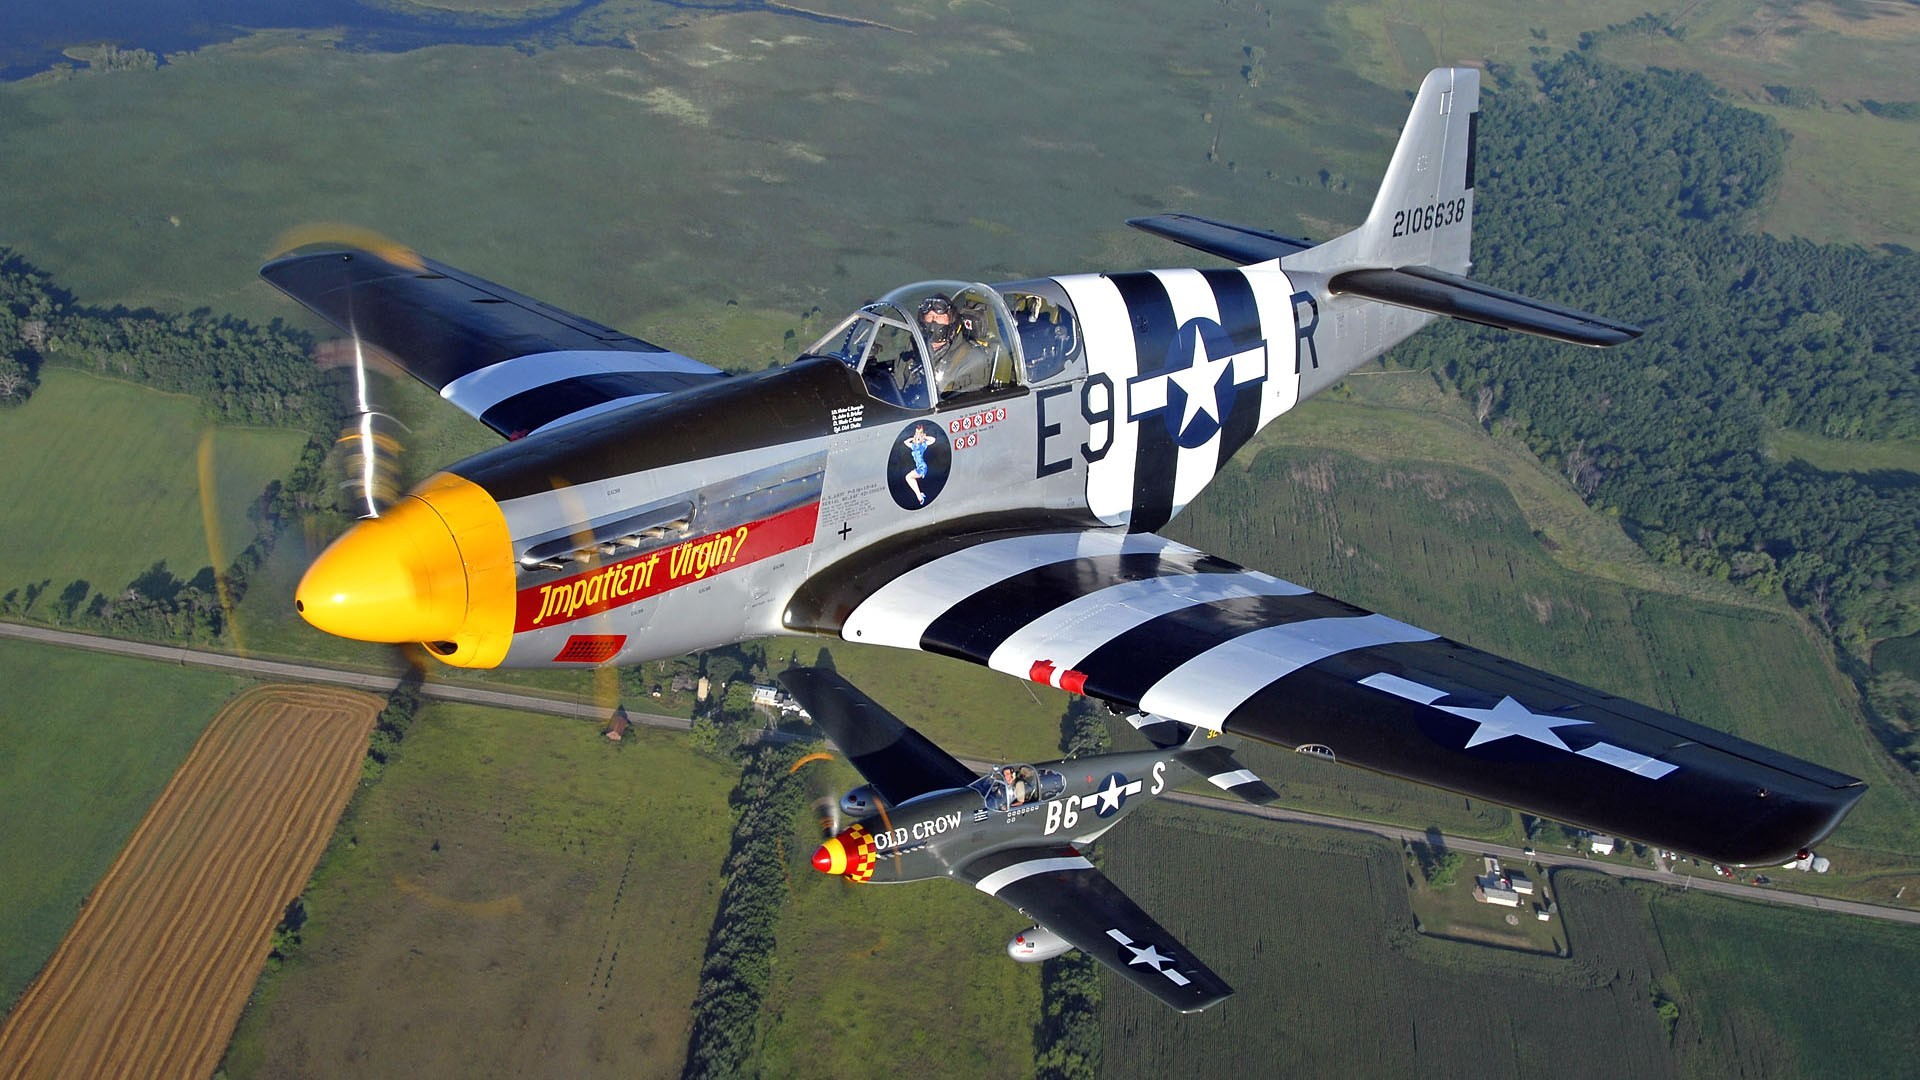 Aircrafts Military Wallpaper Aircrafts, Military, Fighter .